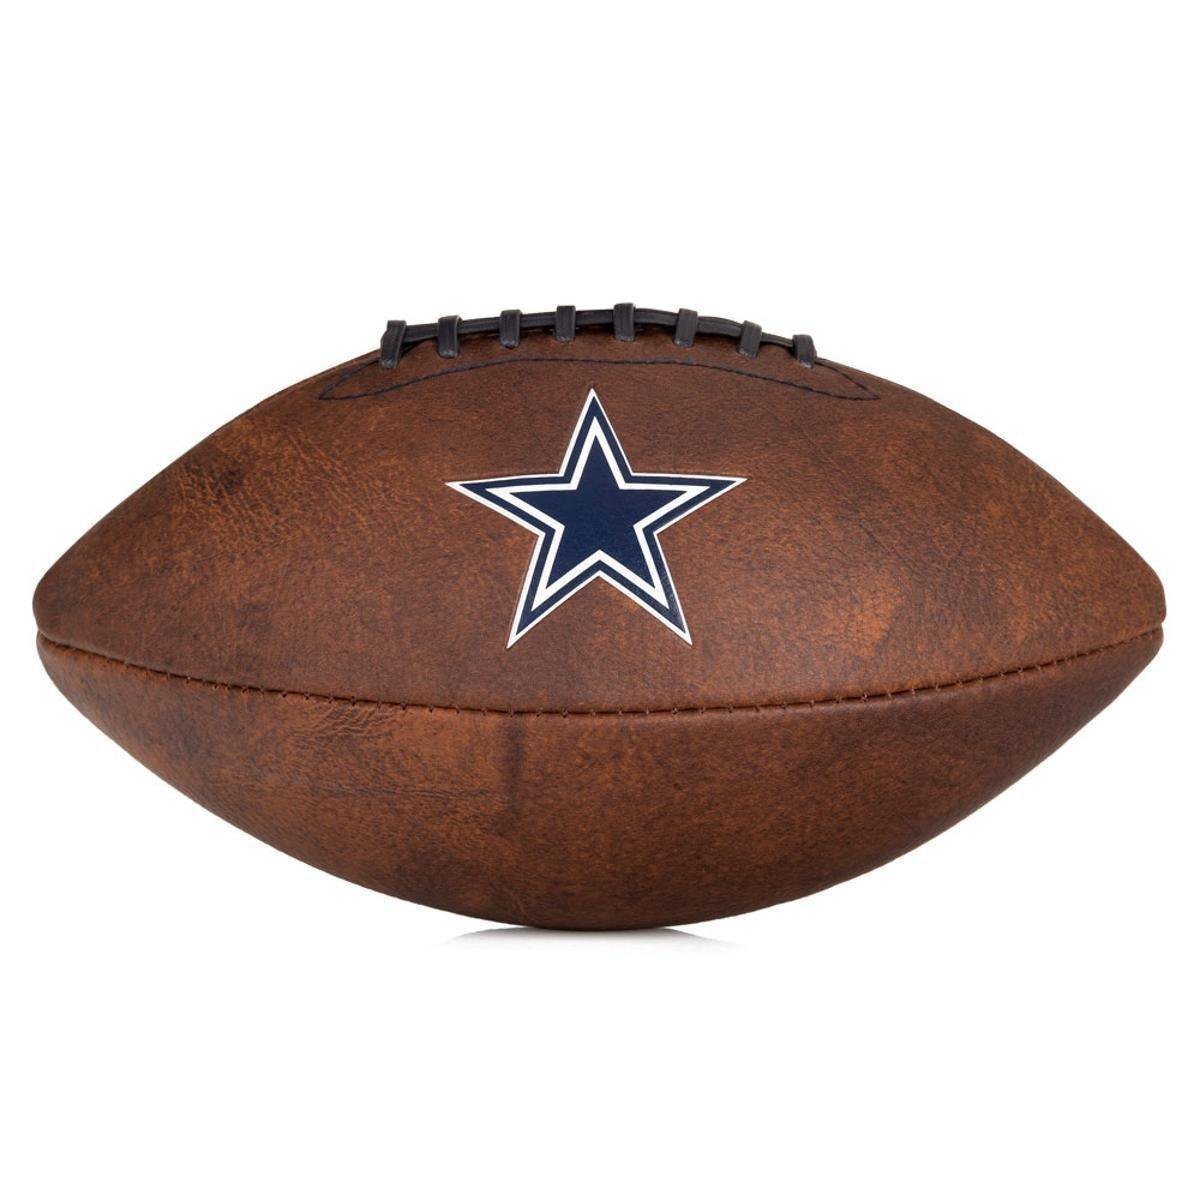 Bola de Futebol Americano Wilson Throwback NFL Jr. Dallas Cowboys ... c6219ccf078